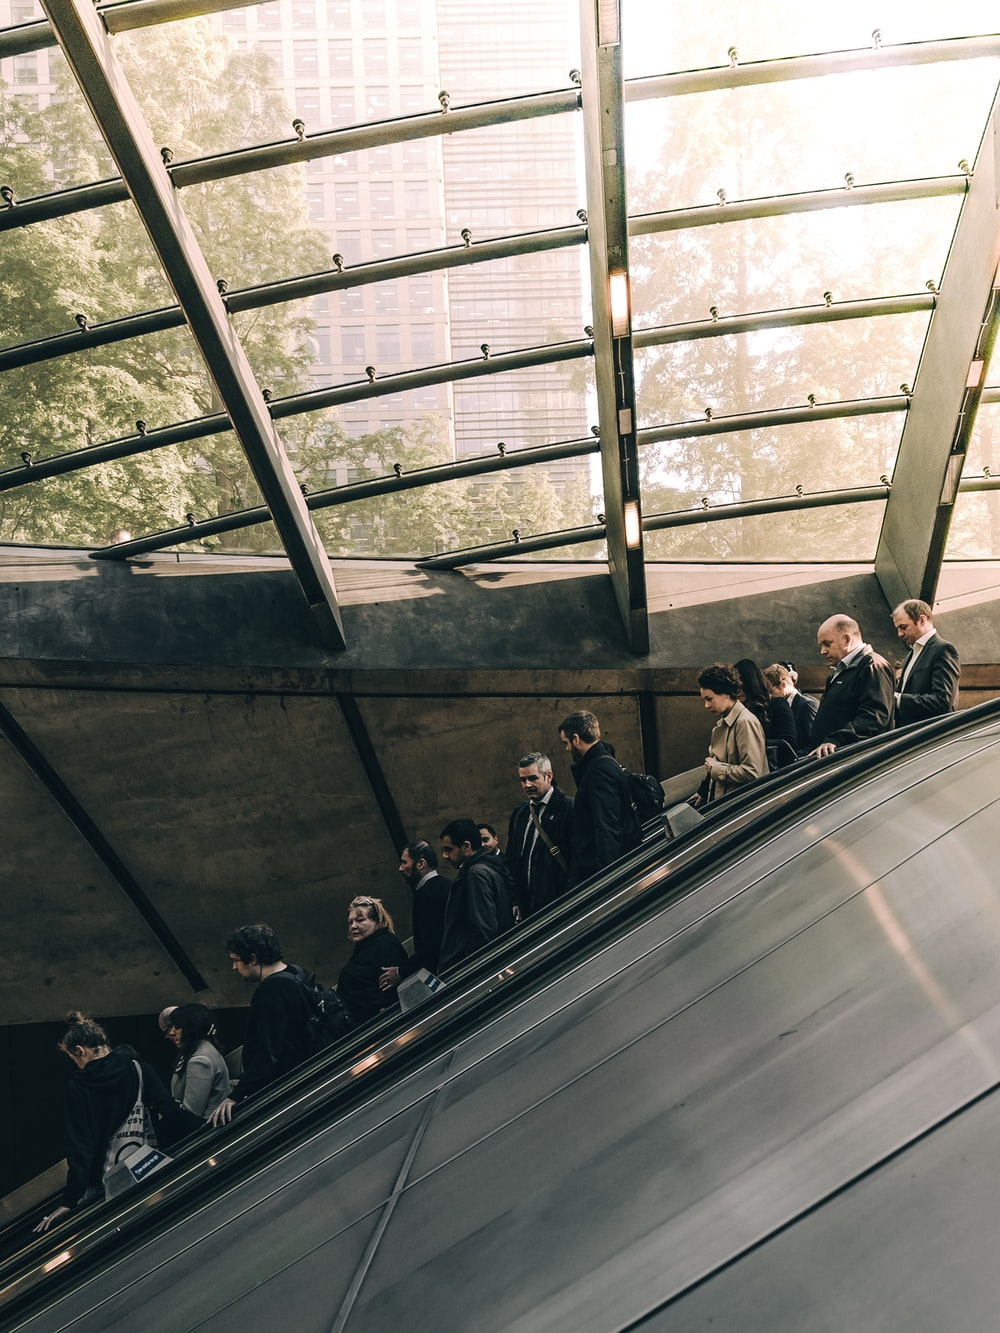 people using escalator during daytime